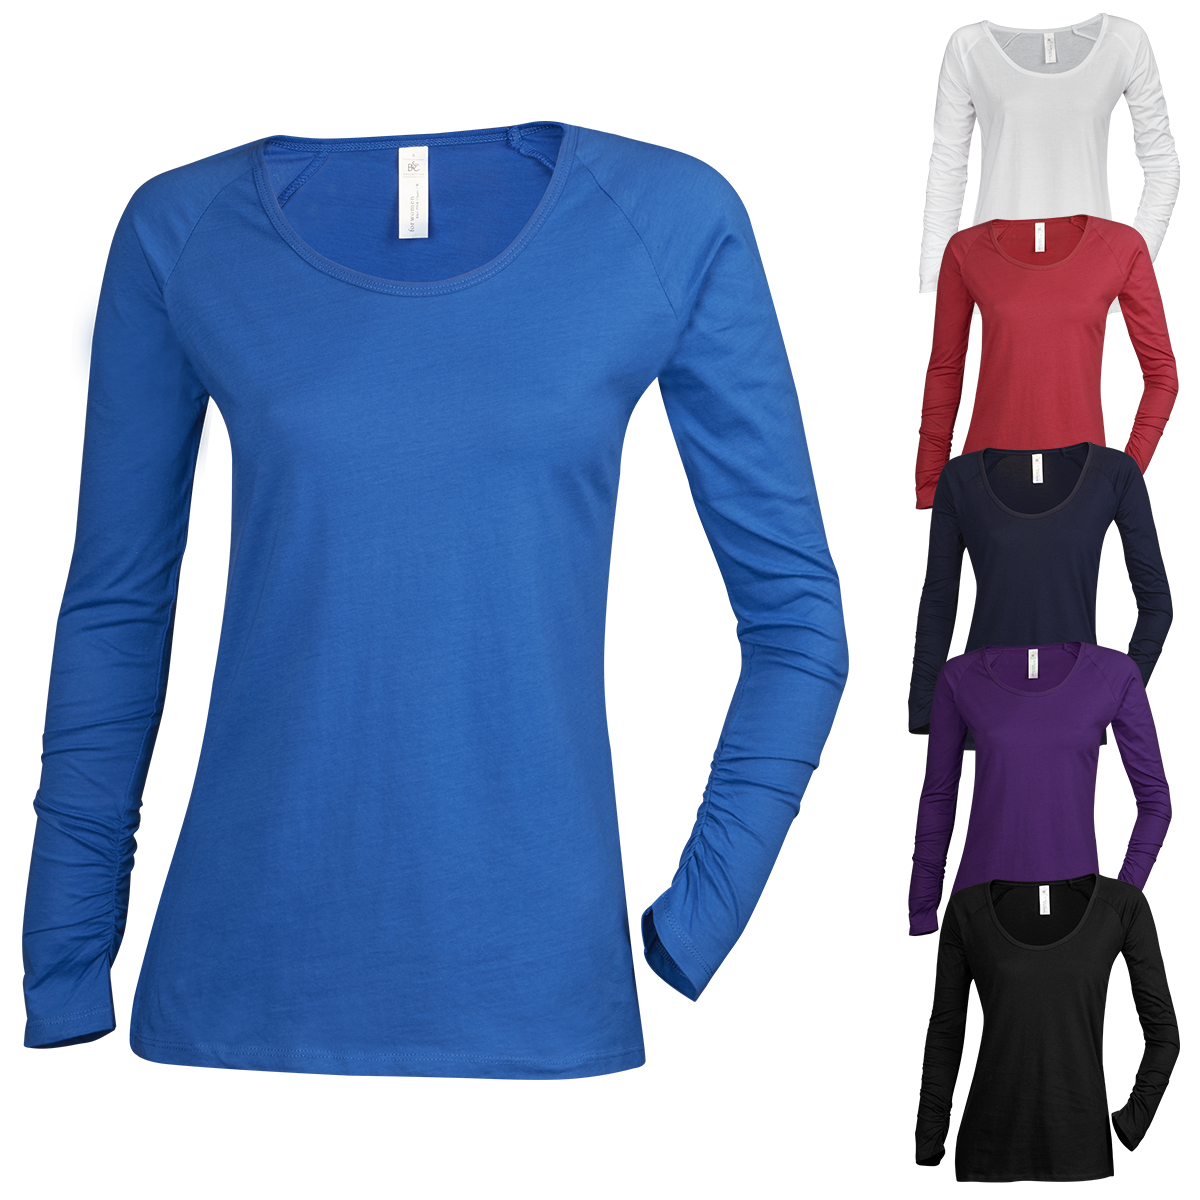 B c ladies plain long sleeve t shirt shirt top scoop neck for Women s 100 cotton long sleeve tee shirts